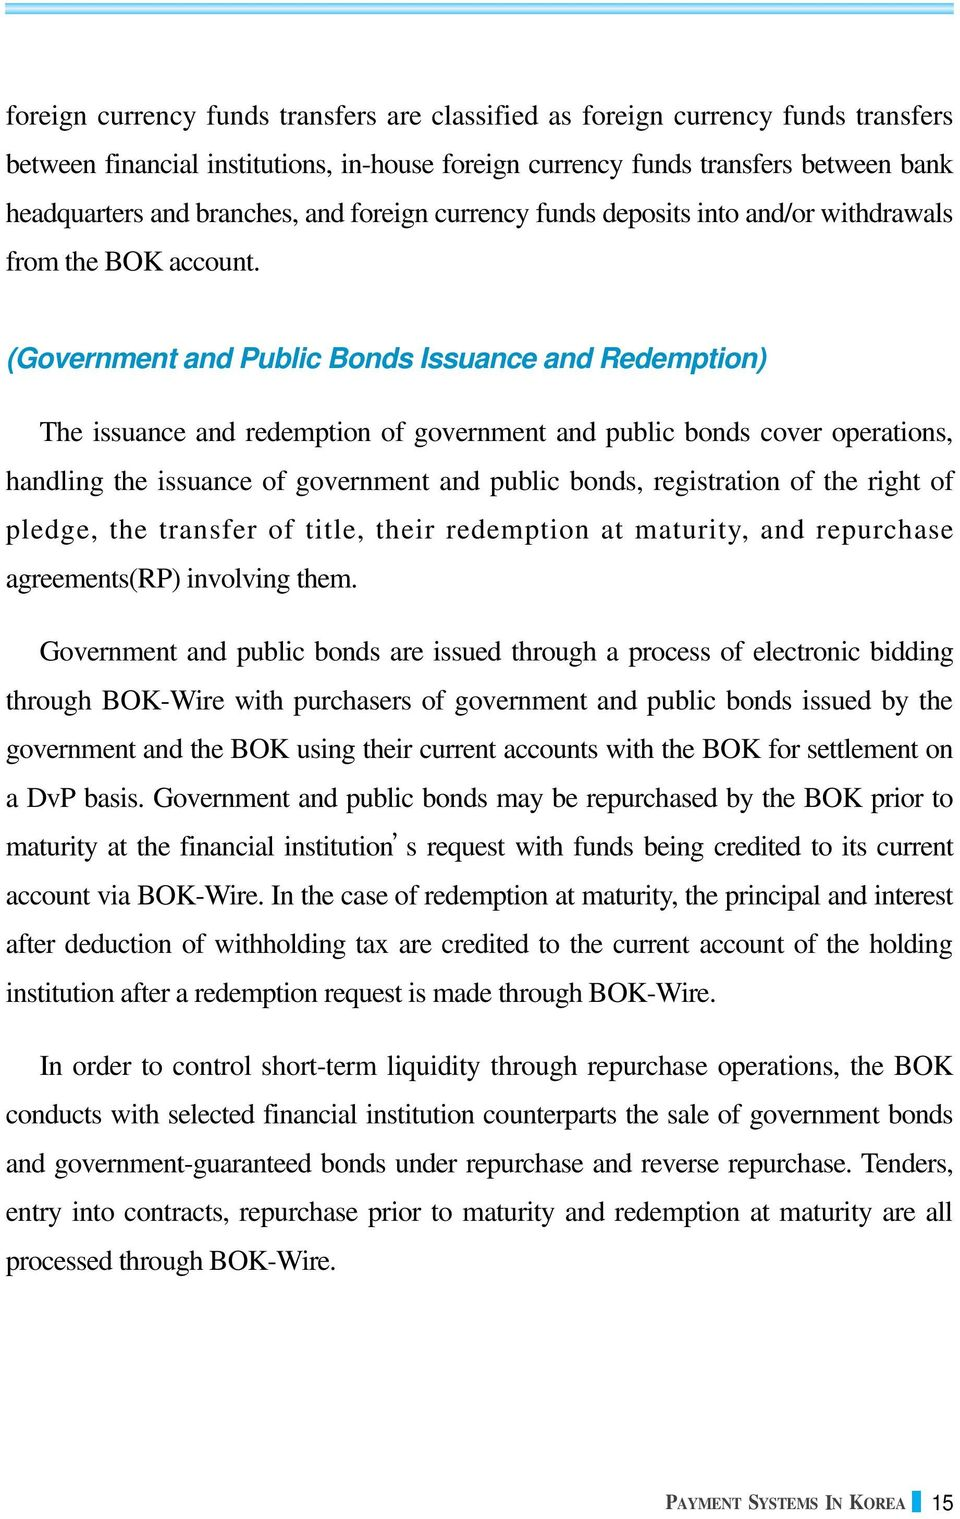 (Government and Public Bonds Issuance and Redemption) The issuance and redemption of government and public bonds cover operations, handling the issuance of government and public bonds, registration